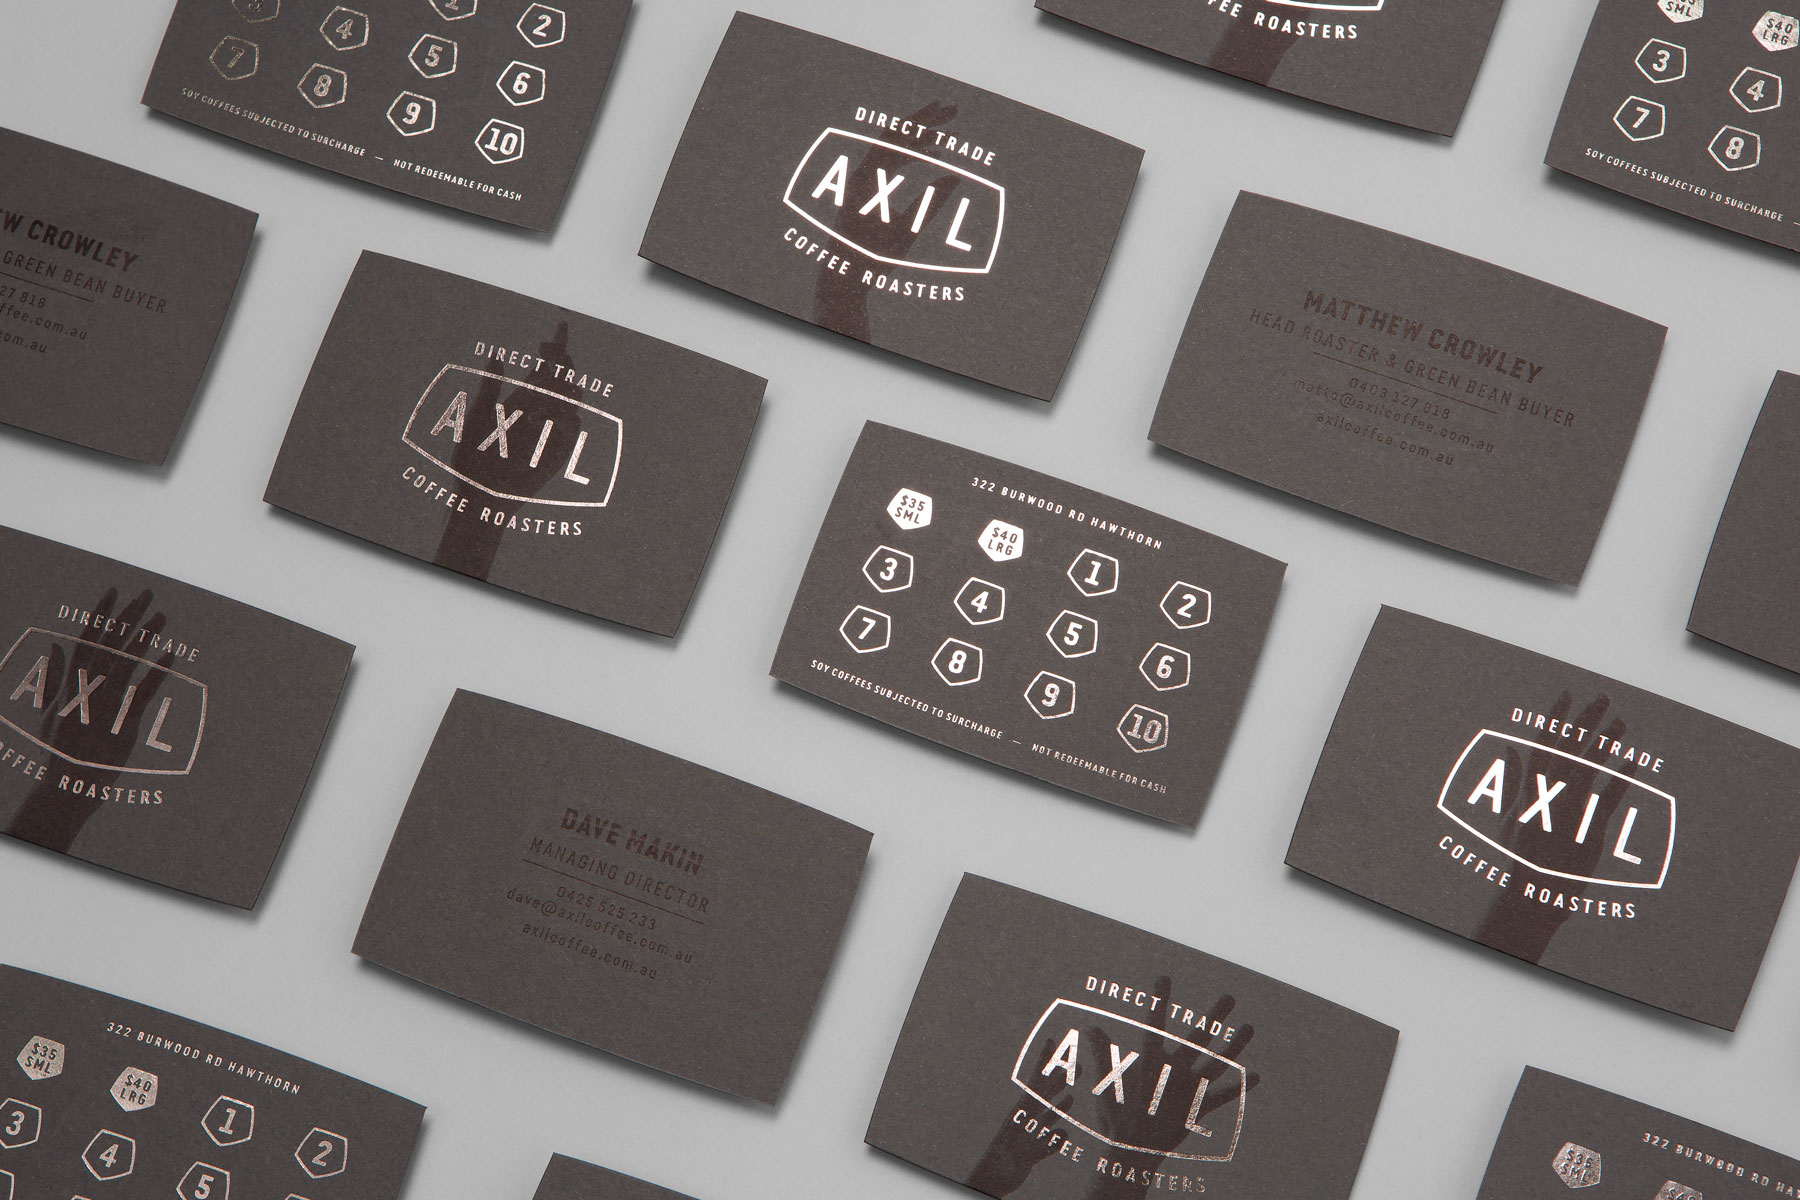 Axil_Coffee_Roasters_Brand_Packaging8